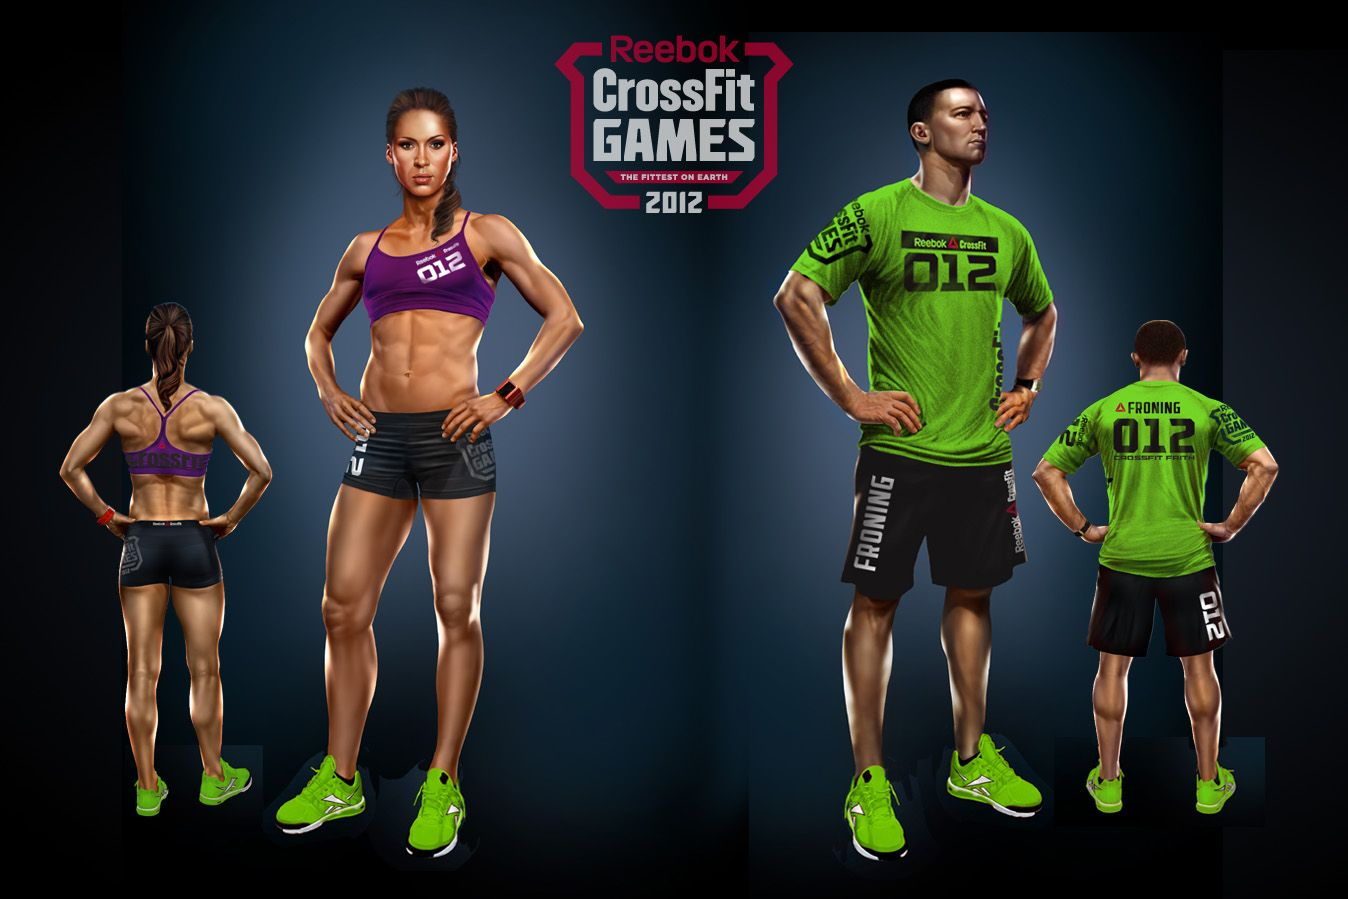 reebok clothing for crossfit